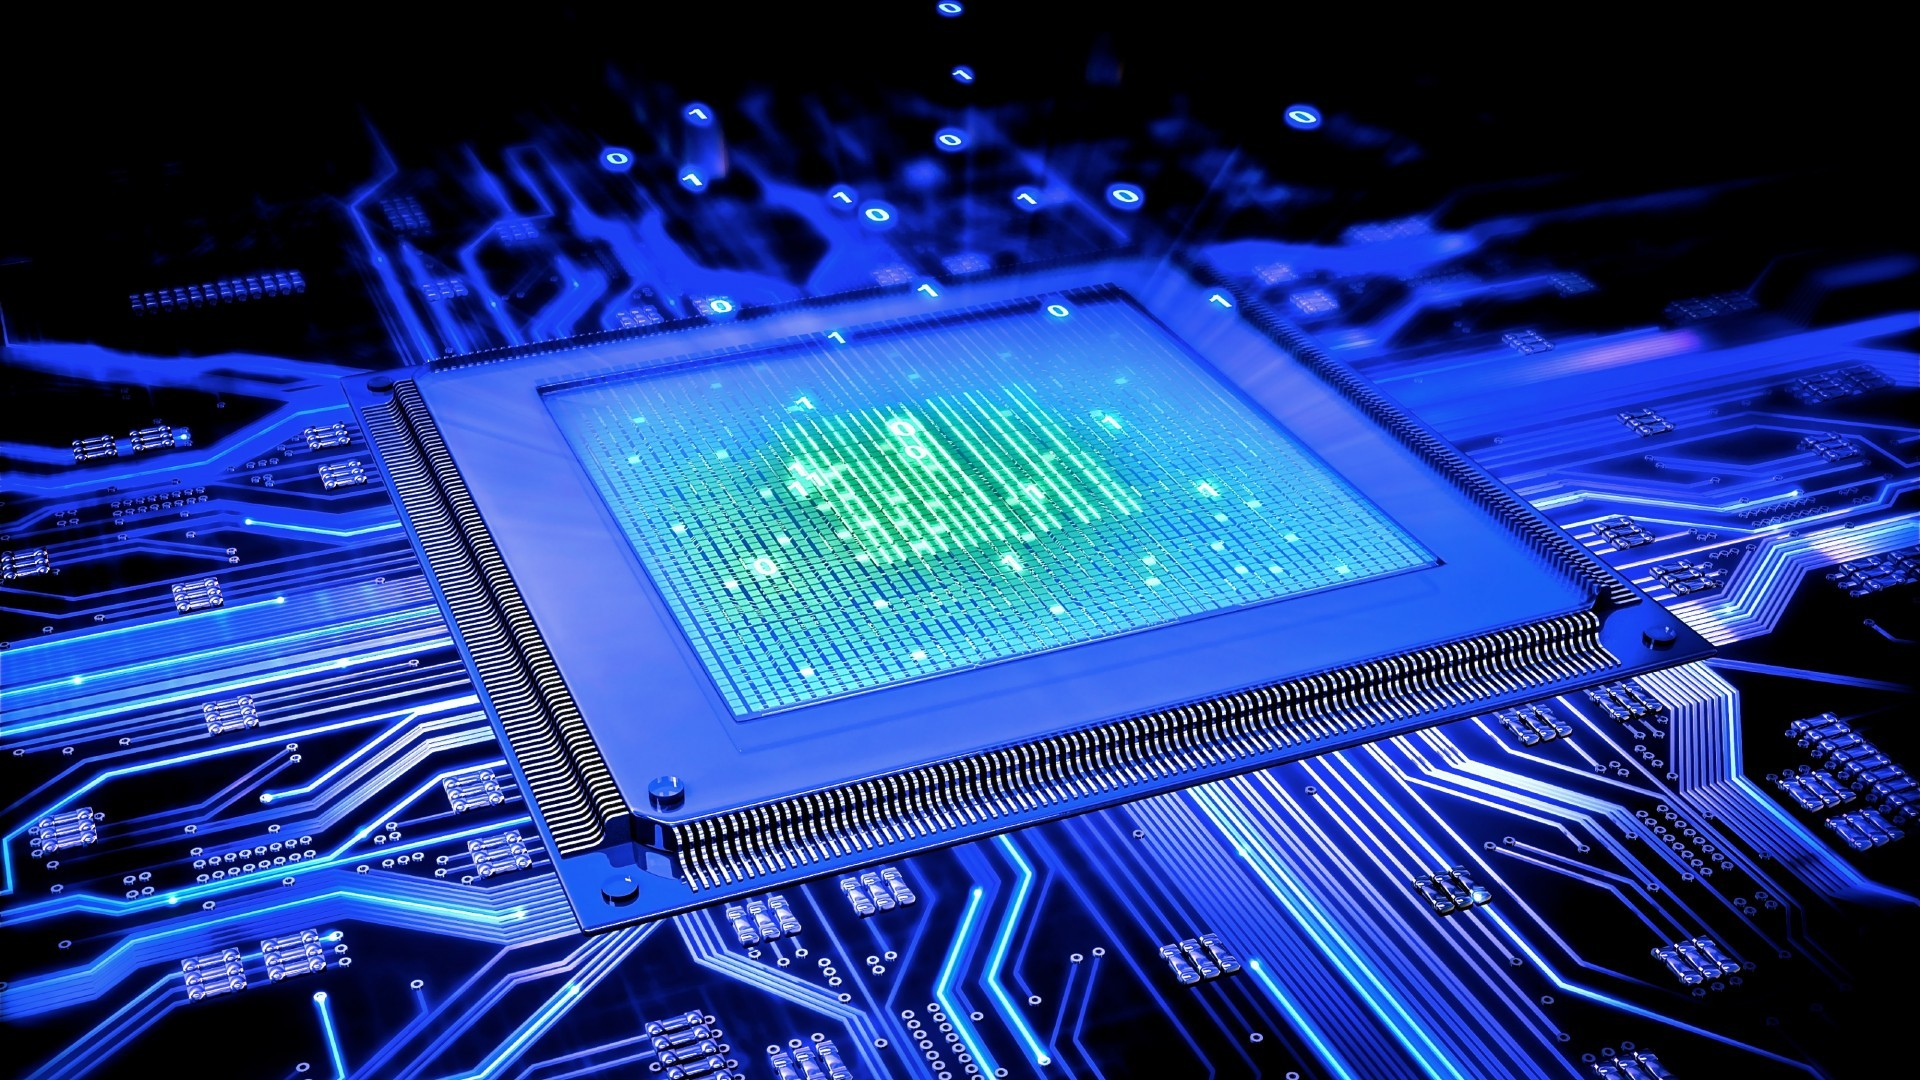 Graphic image of Microprocessor